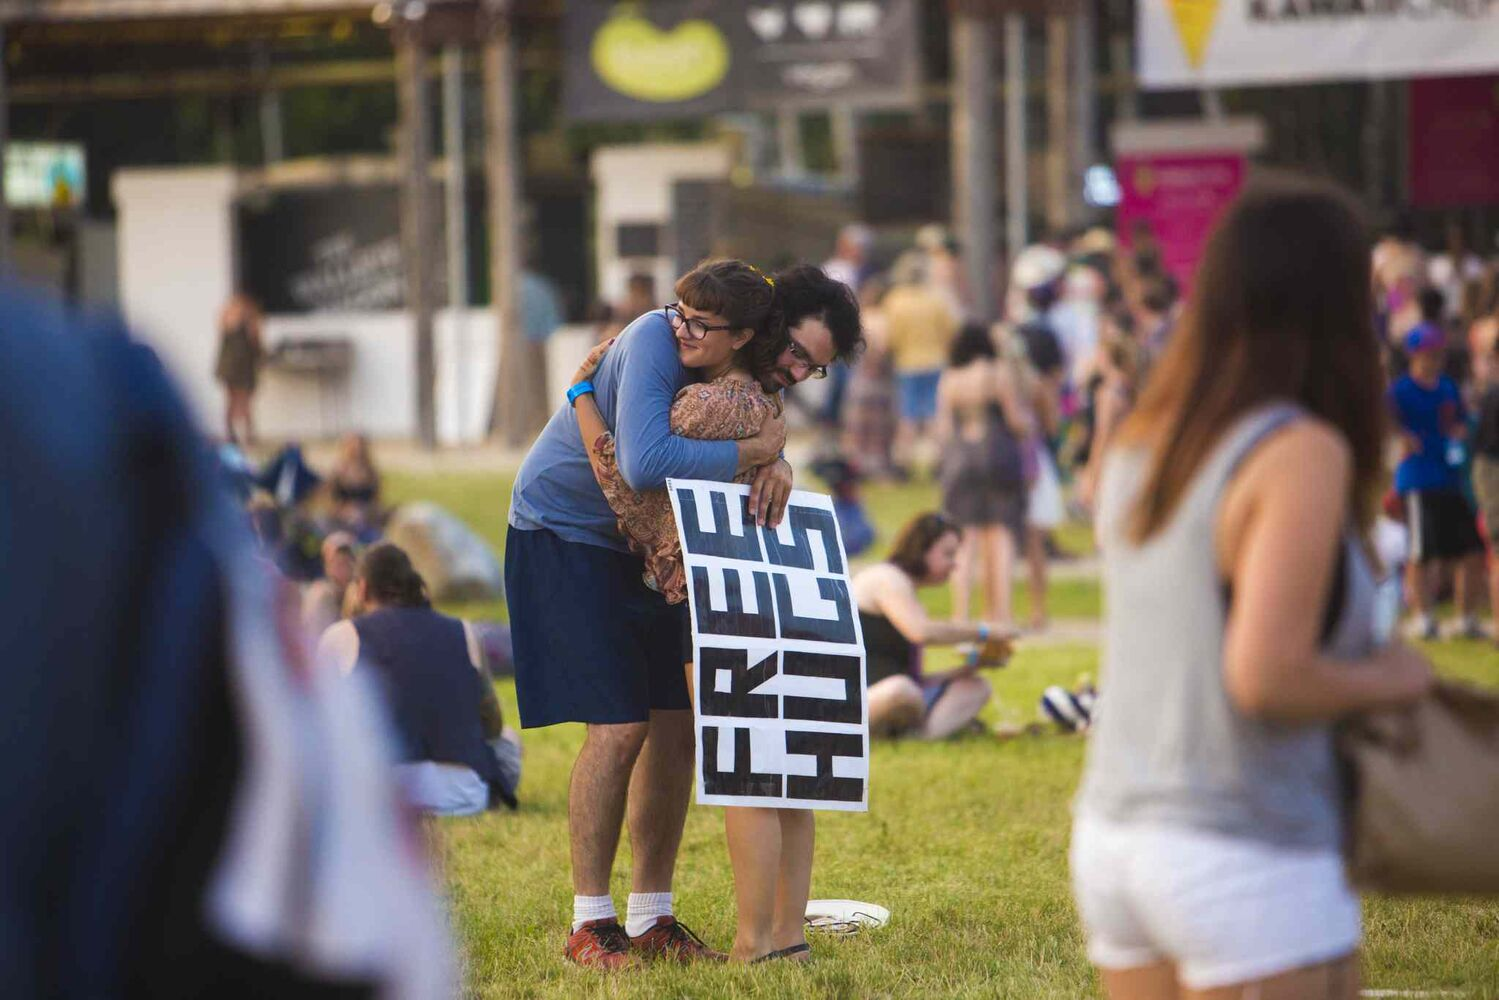 Greg Allan gives Chloe LeBlanc-tod a free hug at the Winnipeg Folk Festival in Birds Hill Park on Friday, July 10, 2015.   Mikaela MacKenzie / Winnipeg Free Press (Winnipeg Free Press)